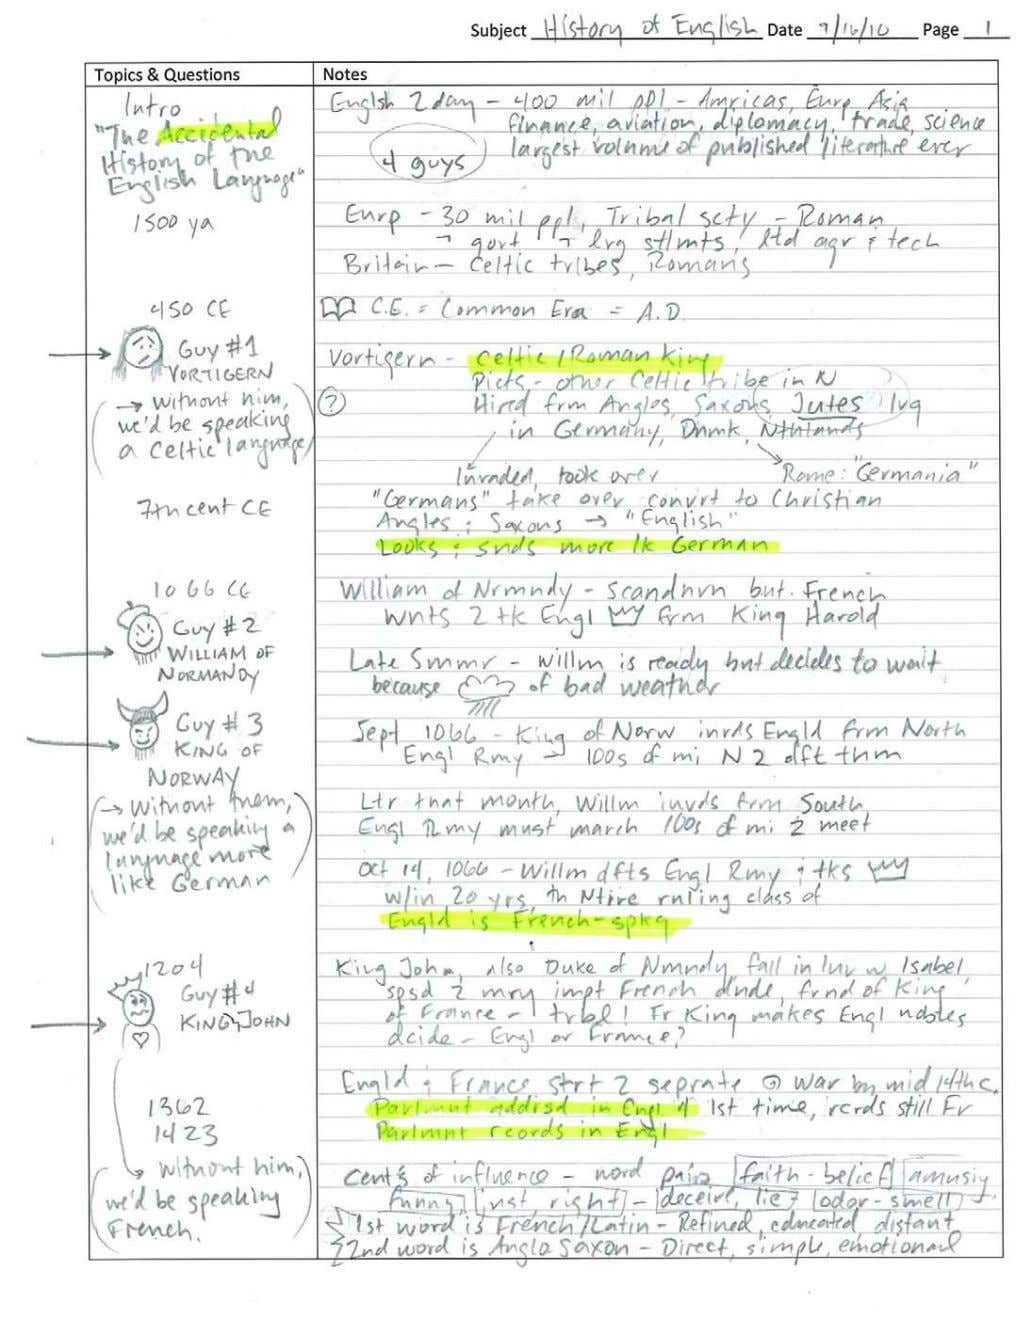 Note Taking Workshop with Dr. Getty | Page 5 of 6